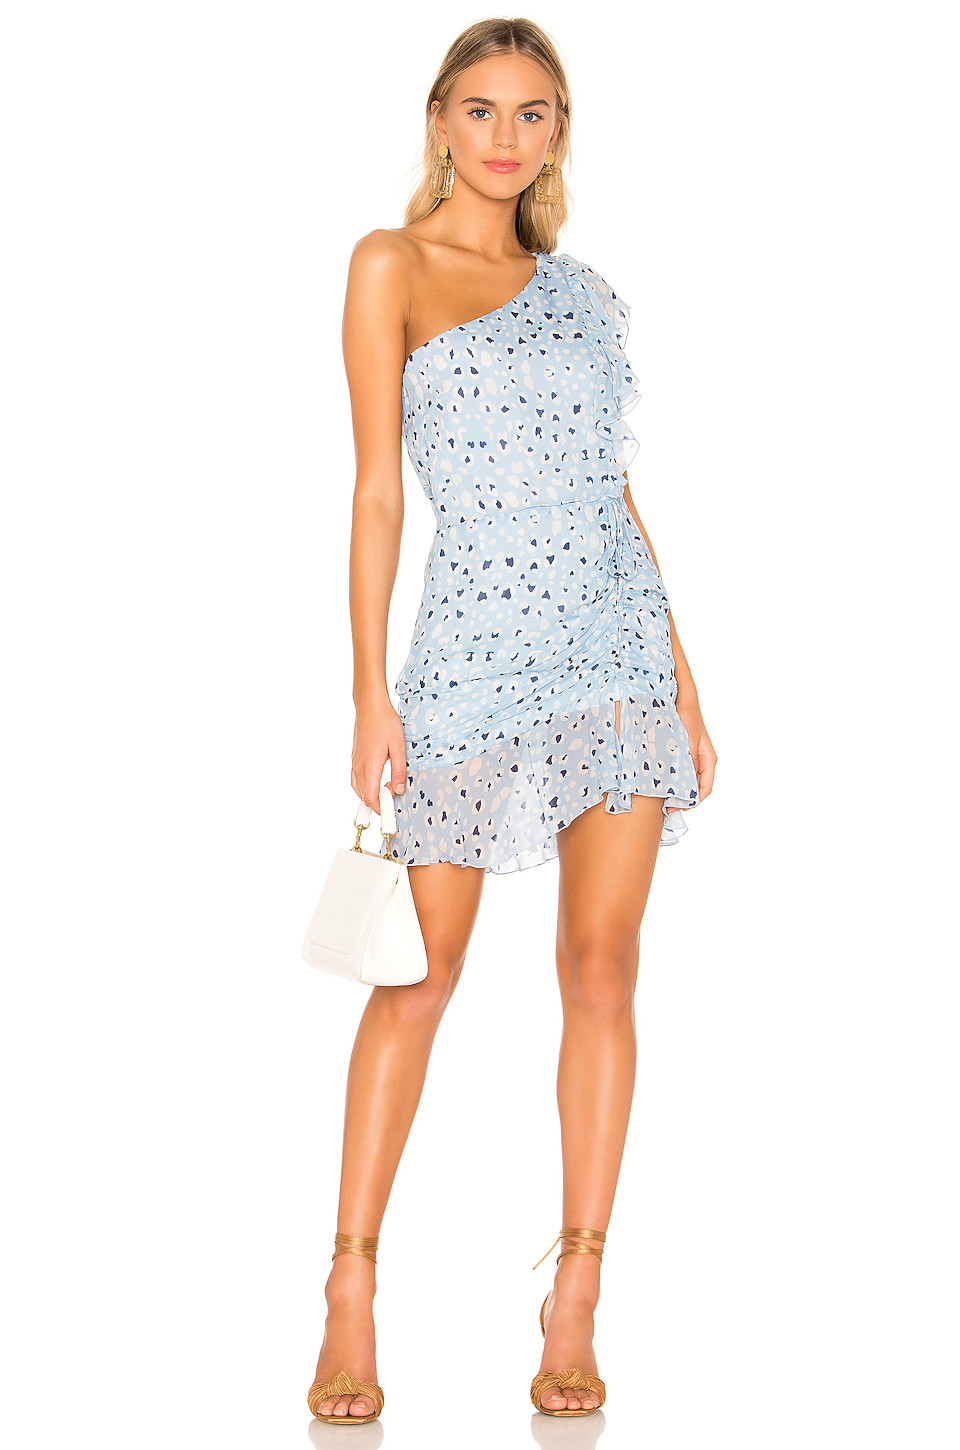 Karina Grimaldi Tana Print Mini Dress